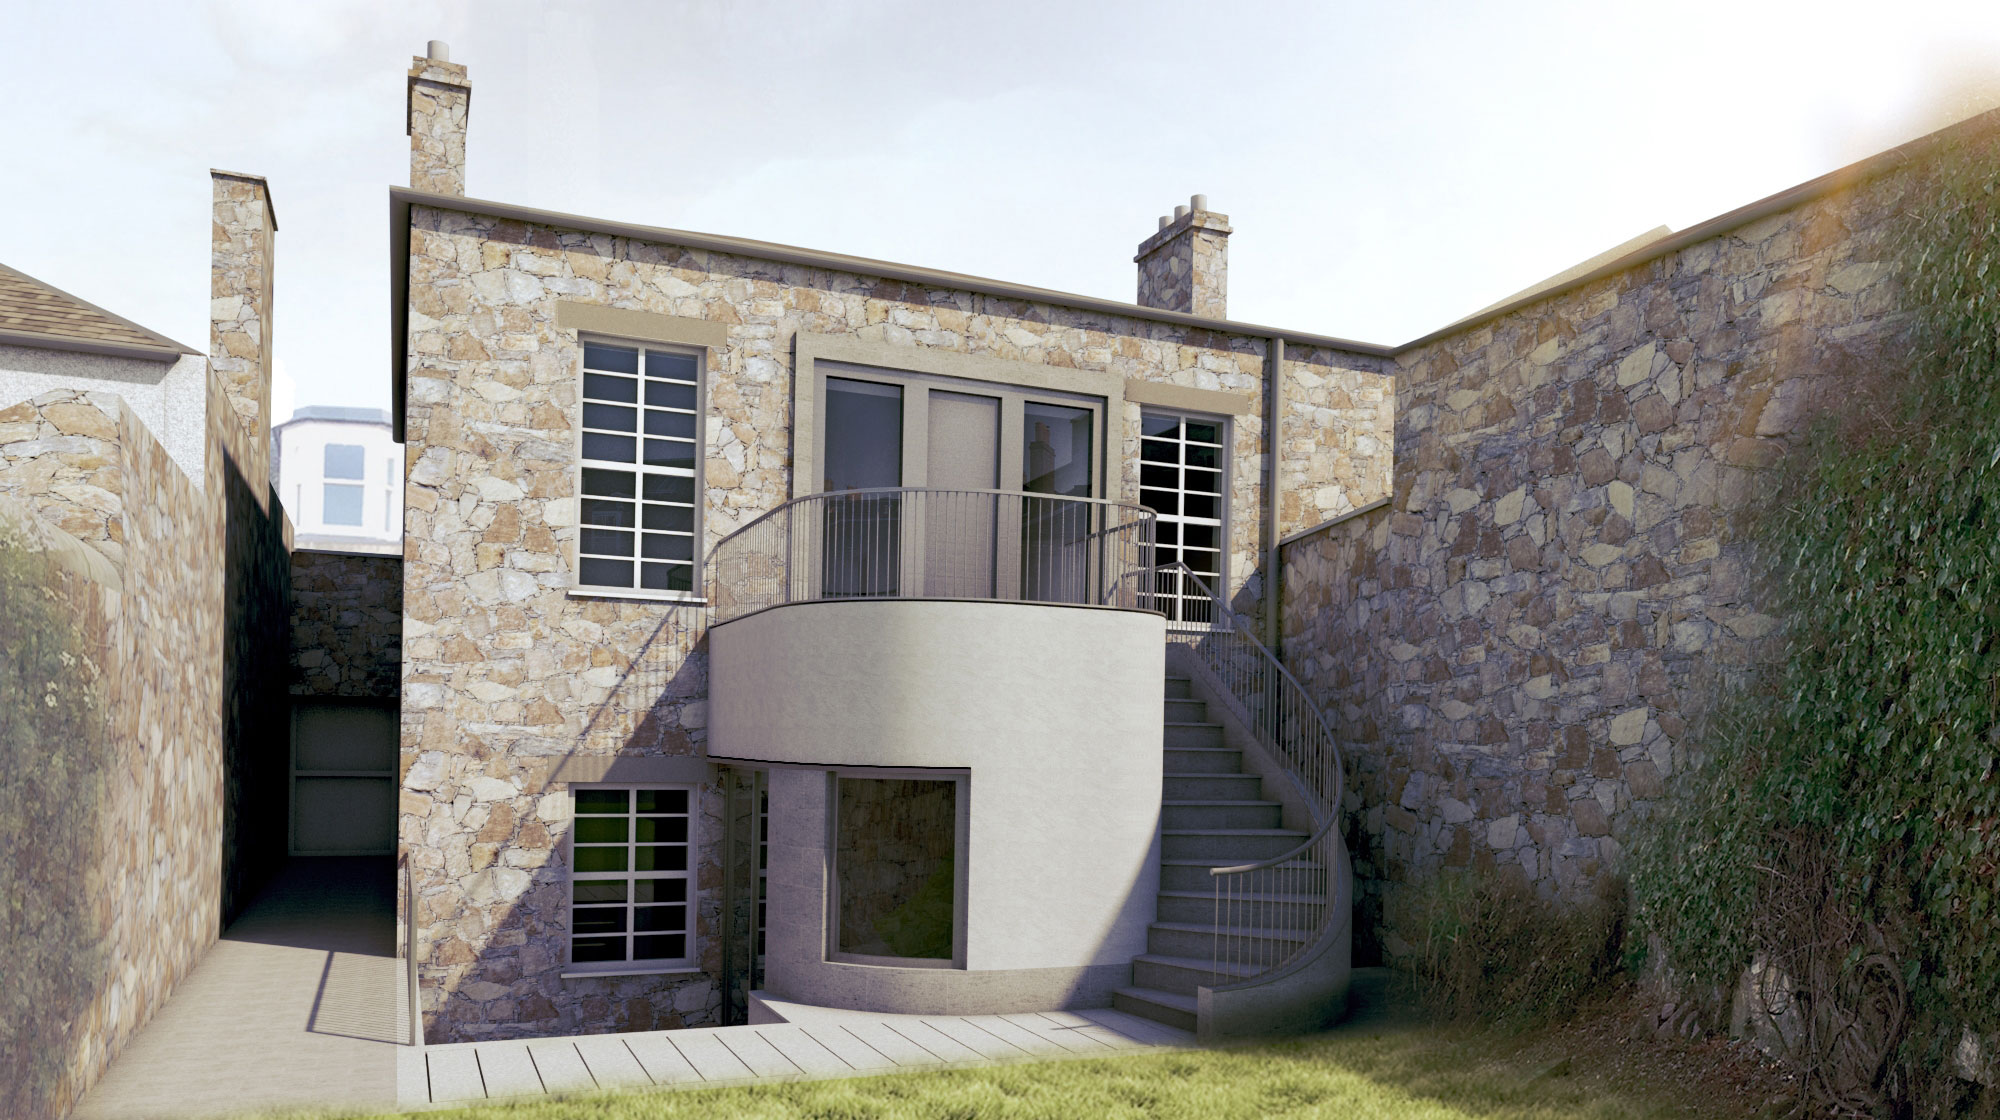 Next stage of the designs for Portobello house extension underway,